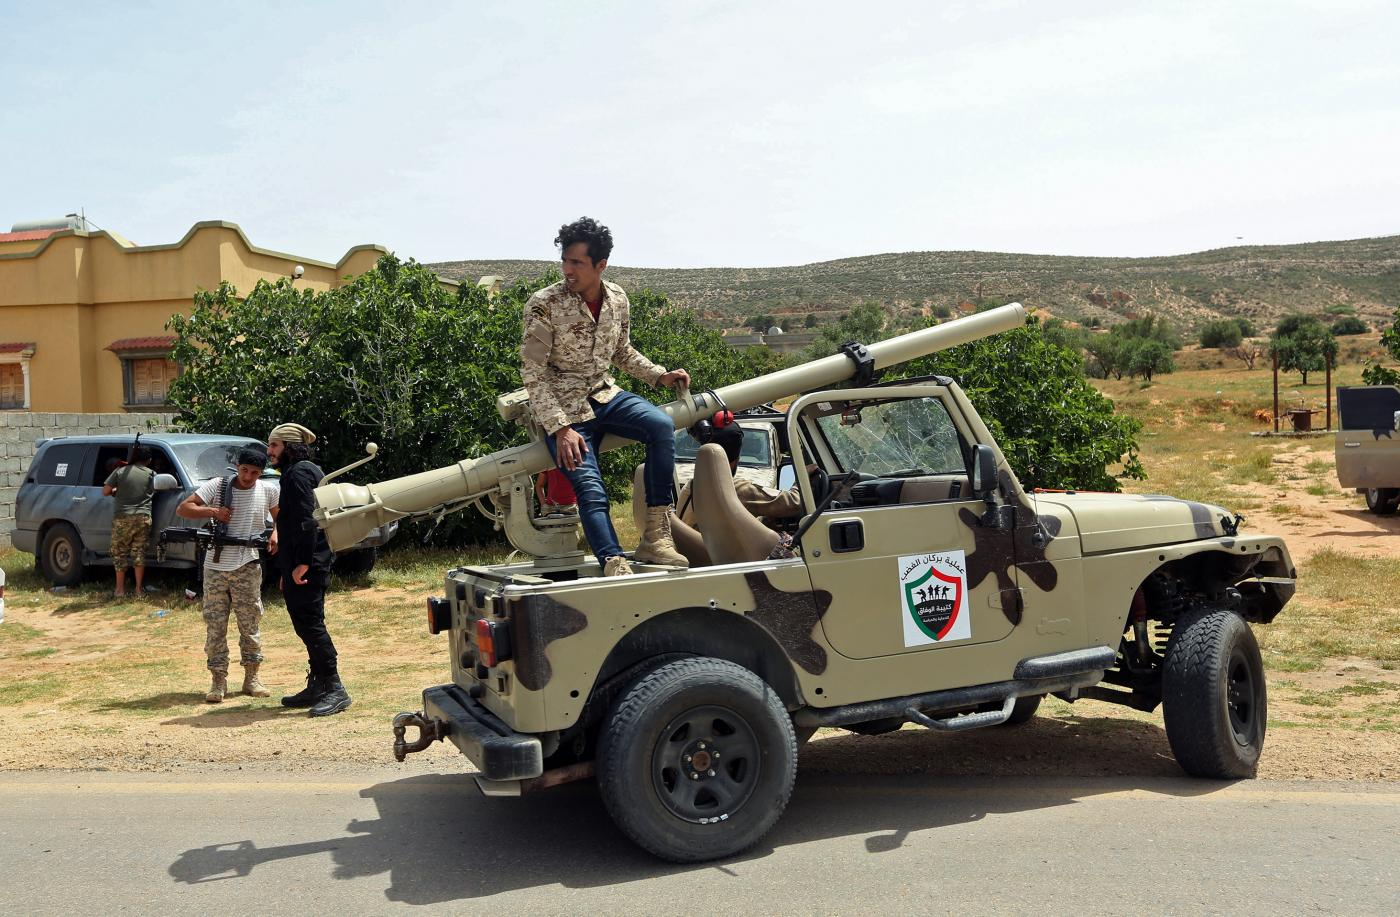 Libya's GNA forces 'launch offensive' to seize key airbase